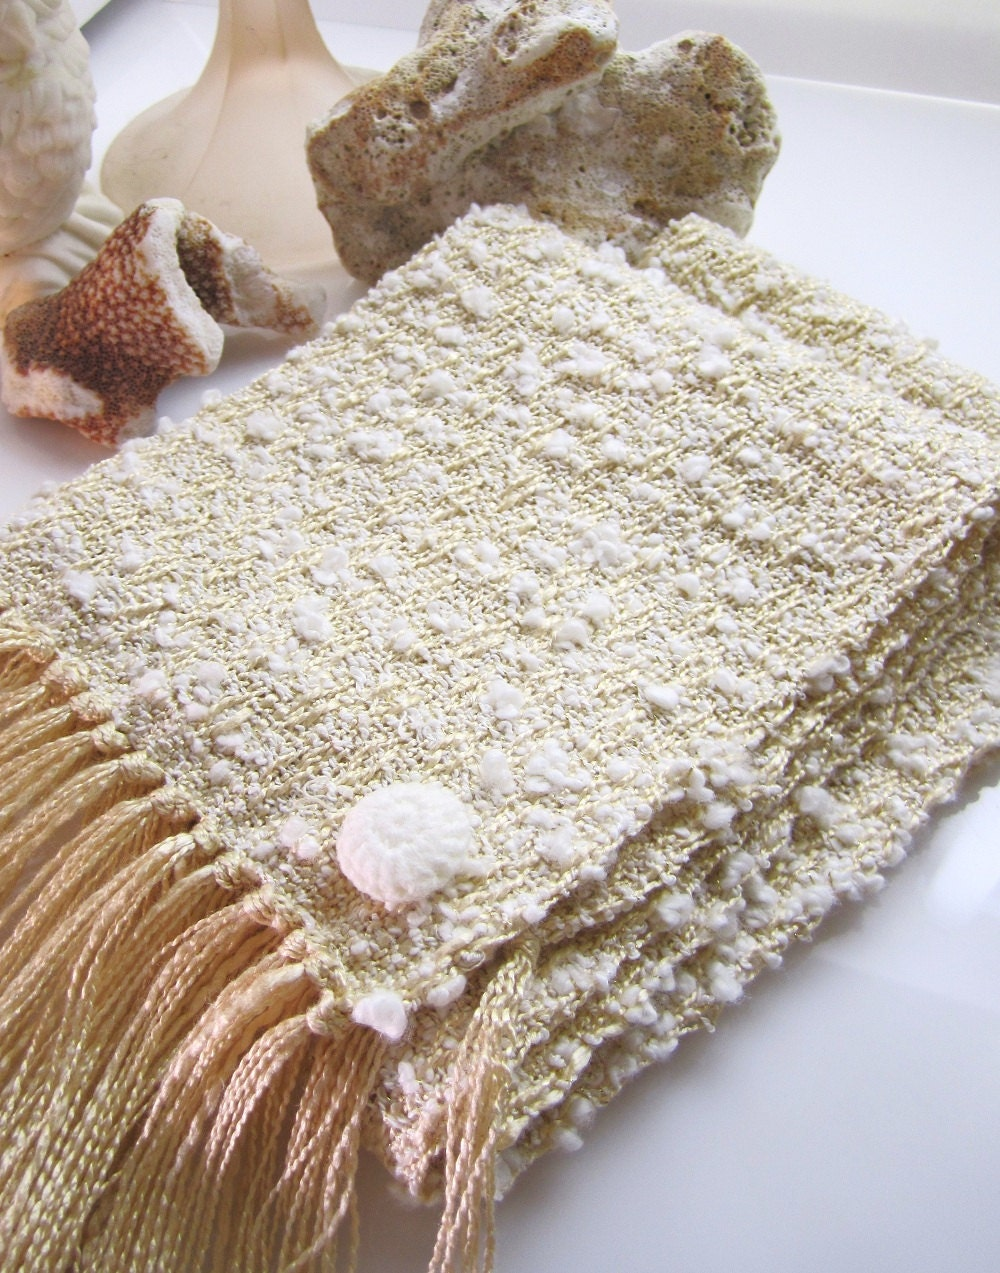 Natural Cream Scarf - Handwoven Scarf - Fashion Scarf - Cotton Boucle Yarn White Scarf - Michelebuttons